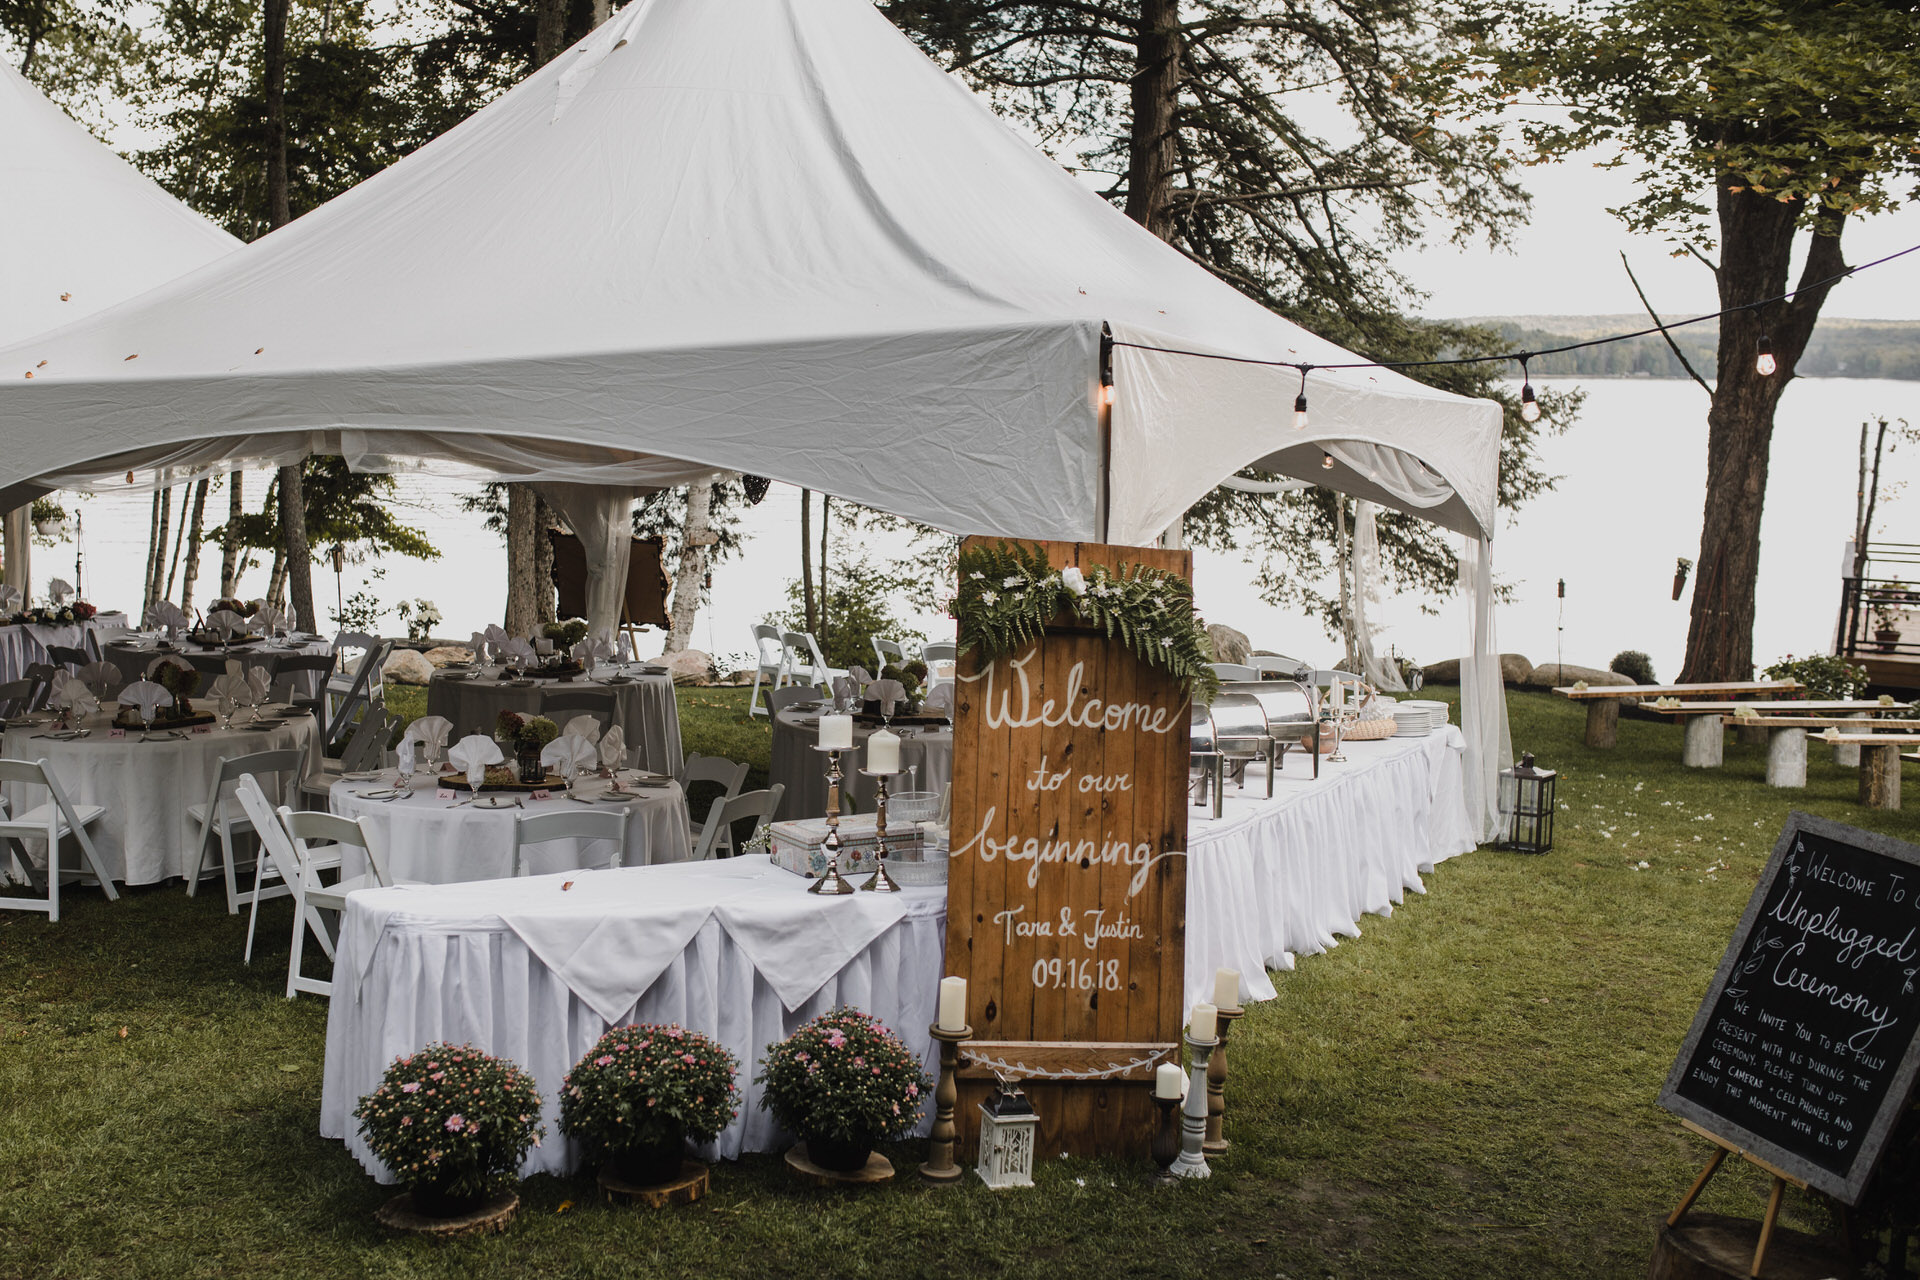 Muskoka Wedding - outdoor reception